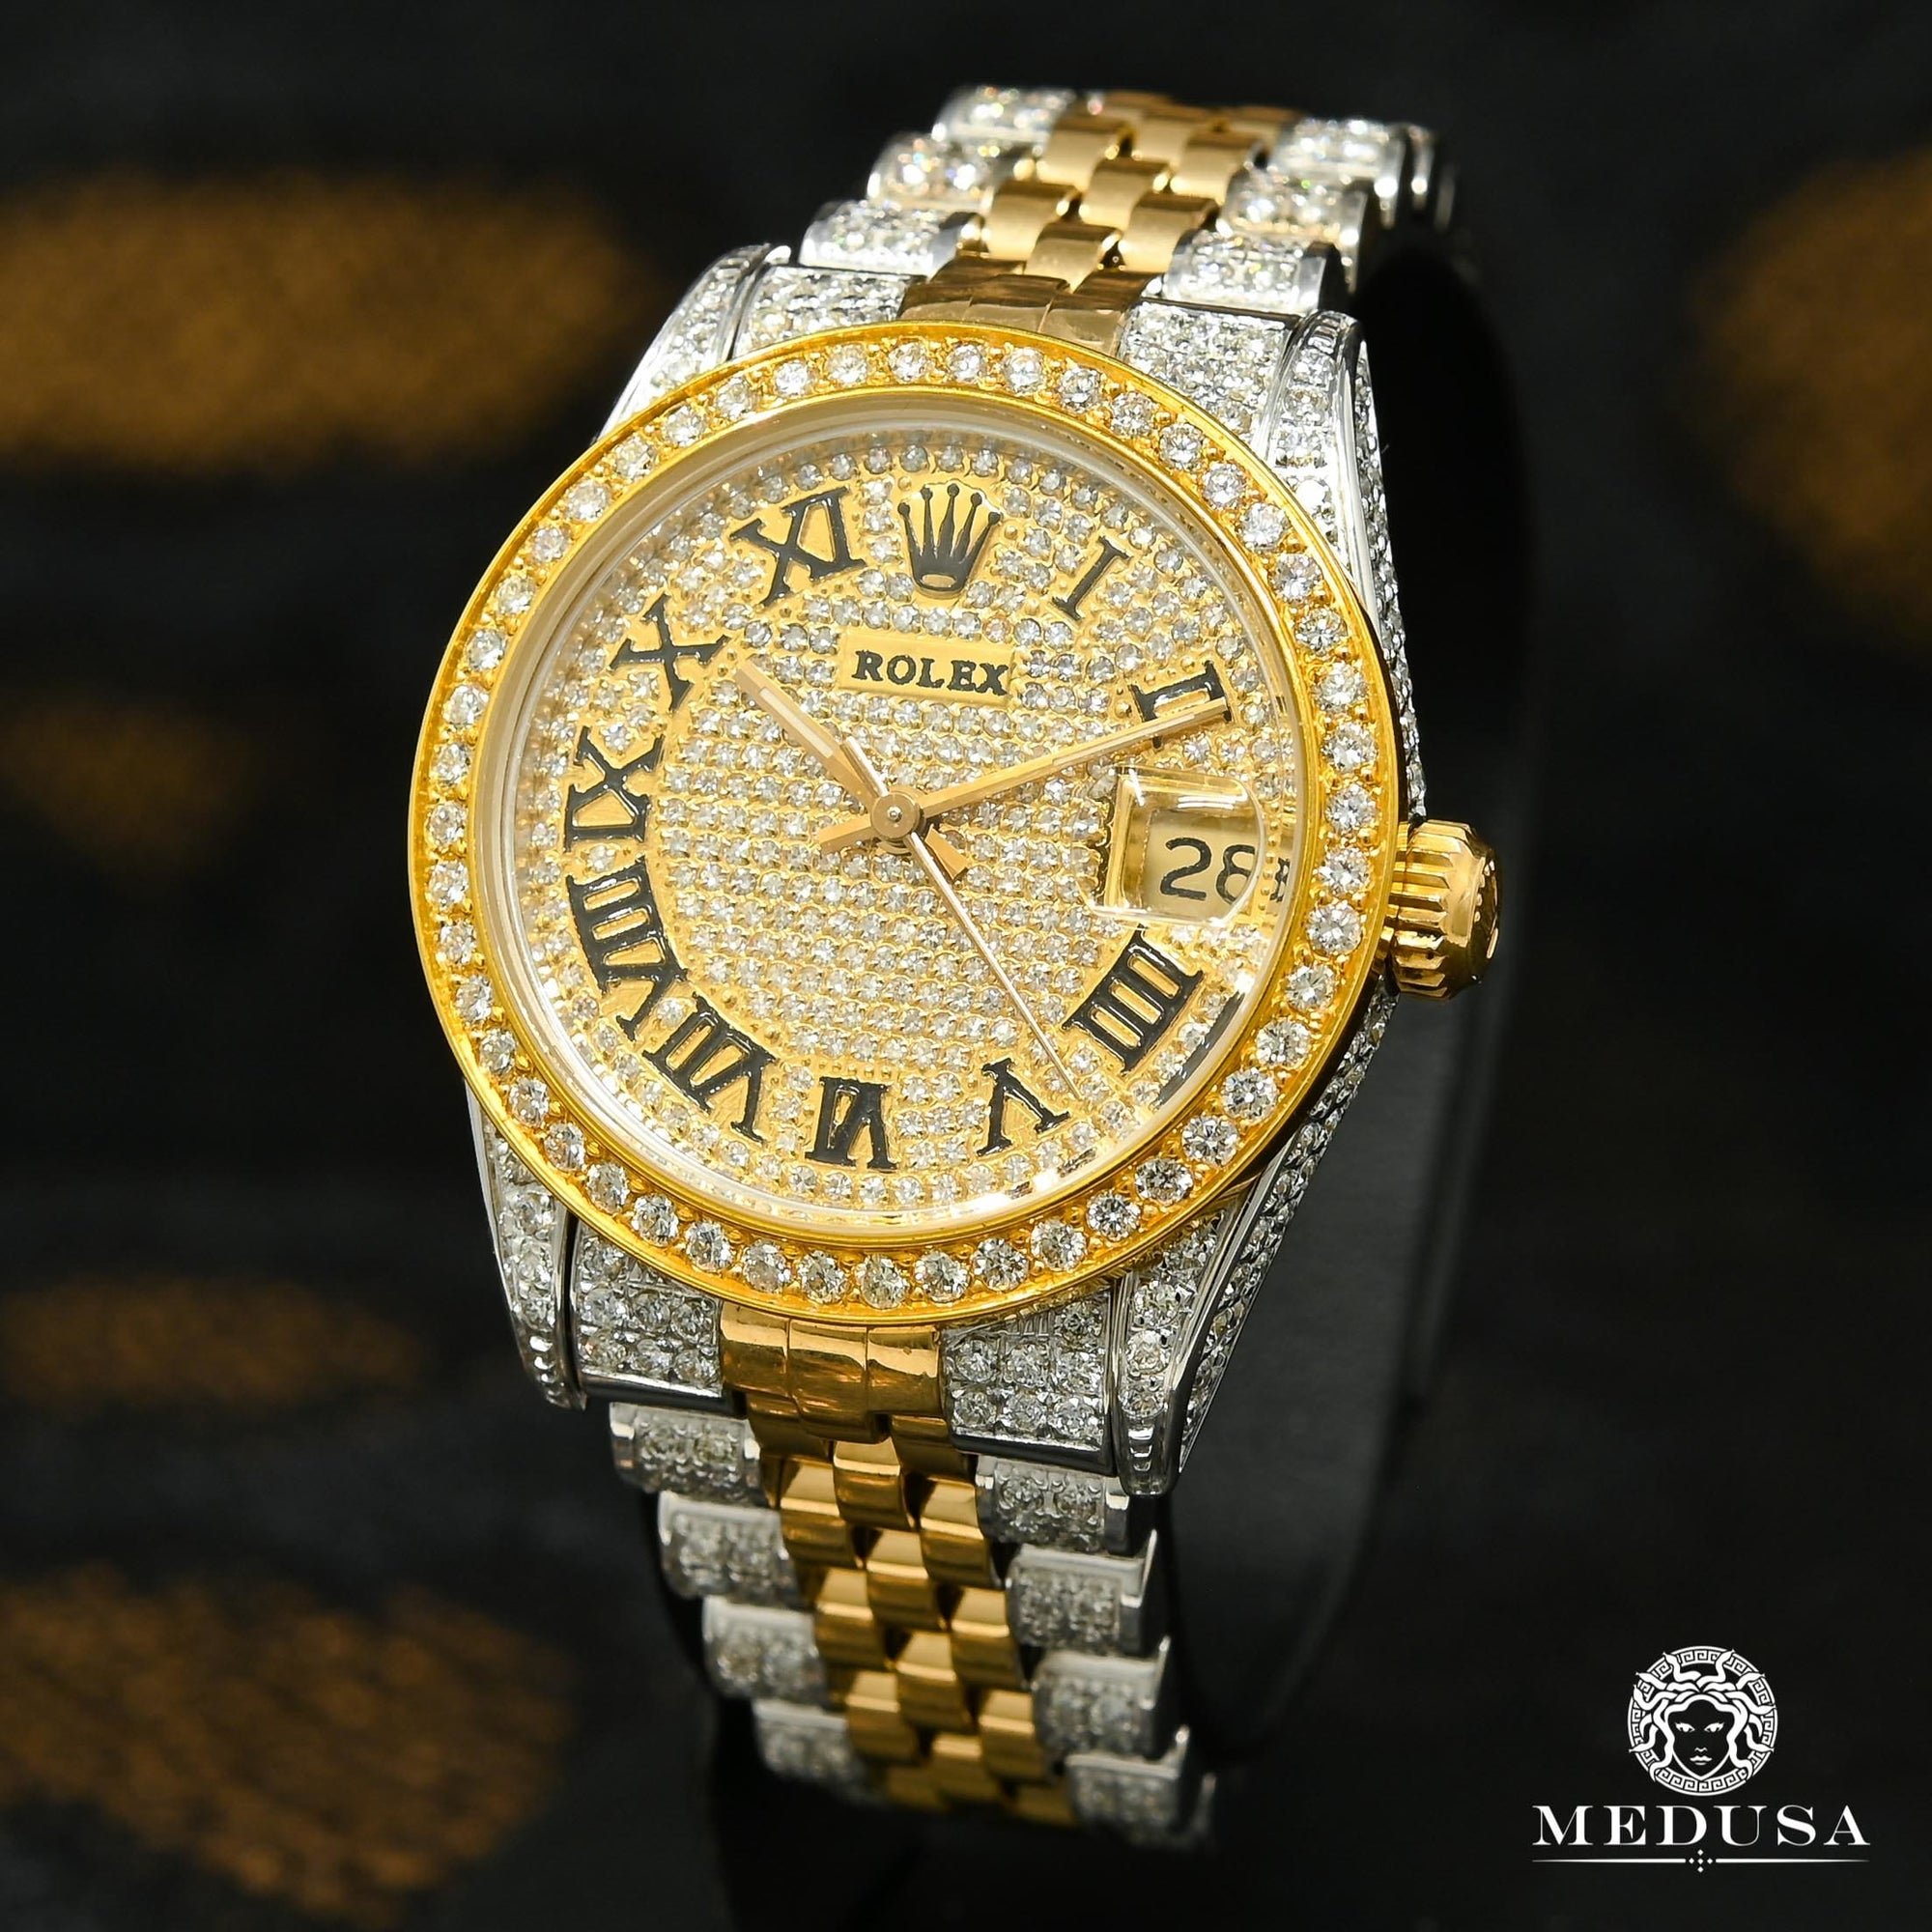 Rolex watch Women's Watch Rolex Lady-Datejust 31mm - Iced Out Gold 2 Tons